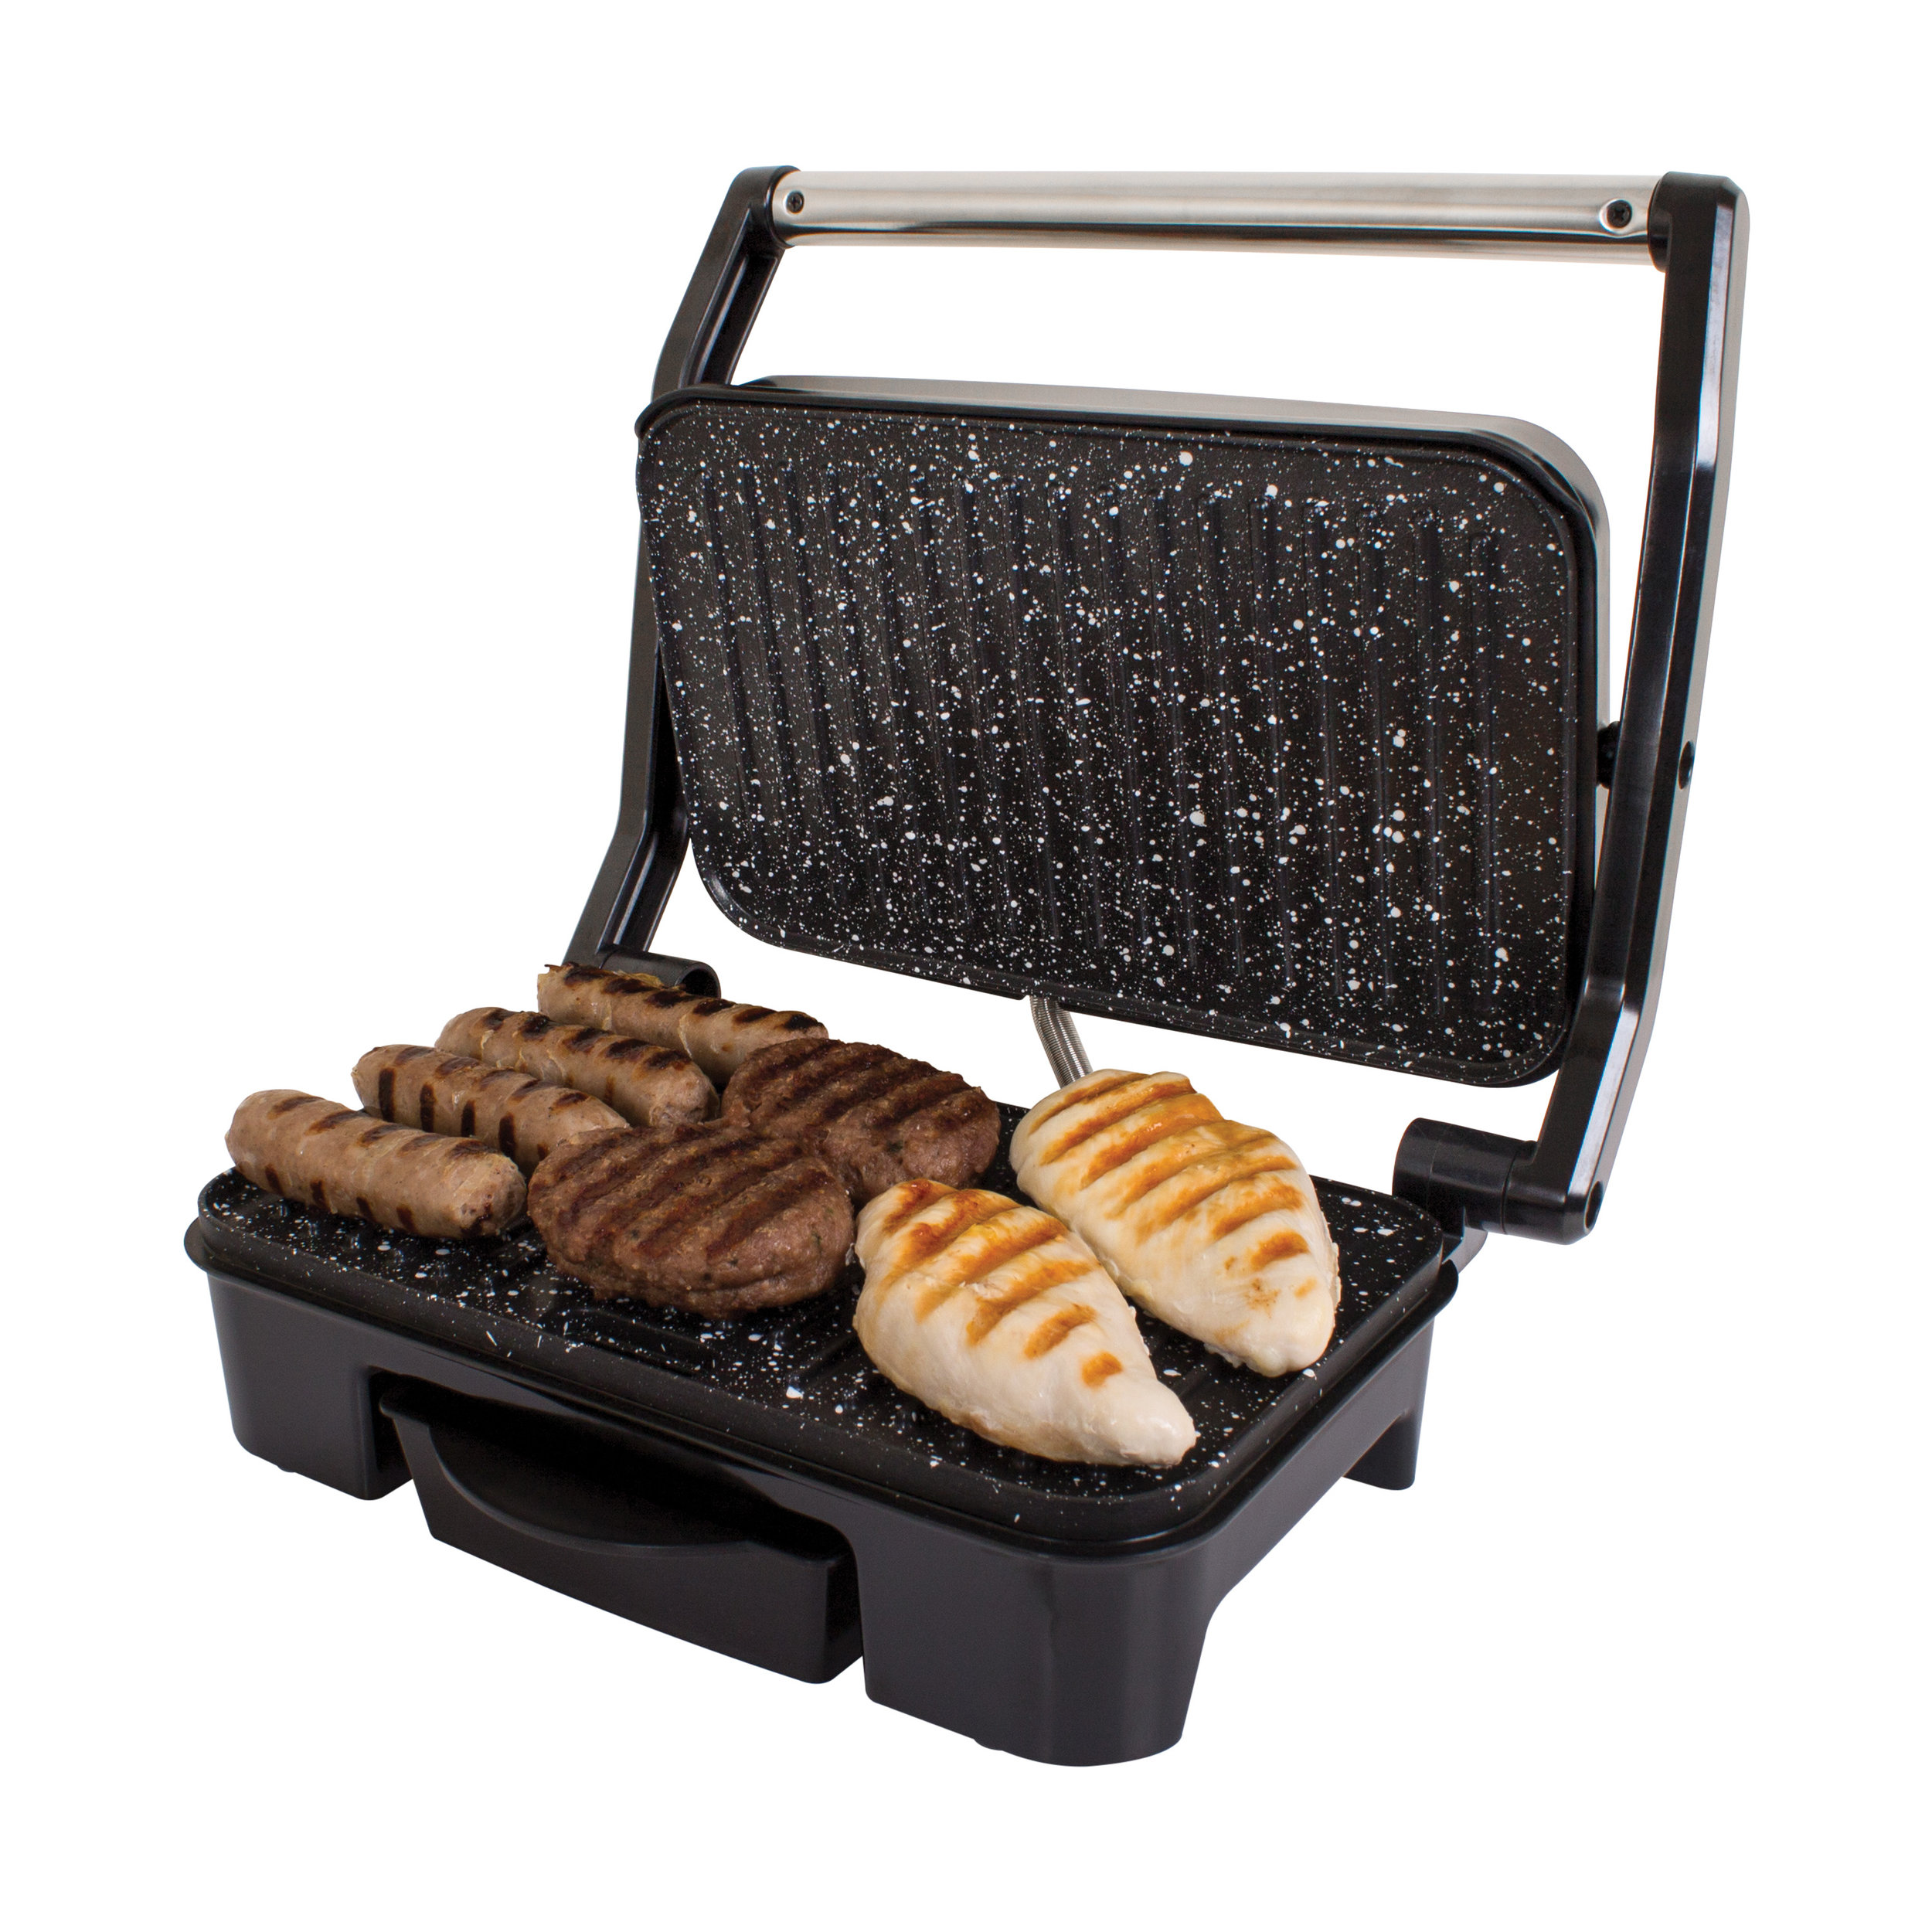 Deluxe Health Grill grilling meat